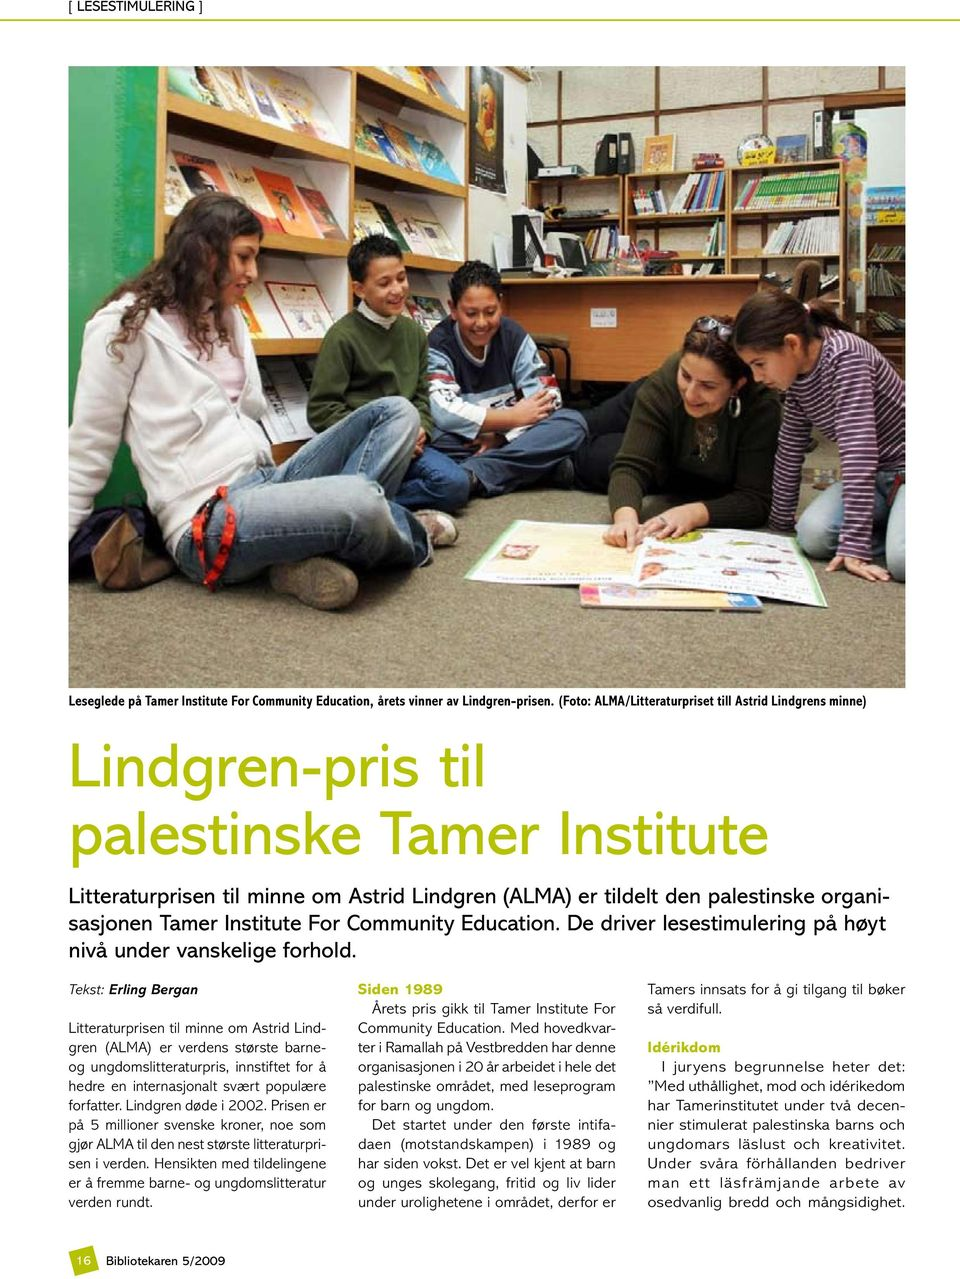 Tamer Institute For Community Education. De driver lesestimulering på høyt nivå under vanskelige forhold.